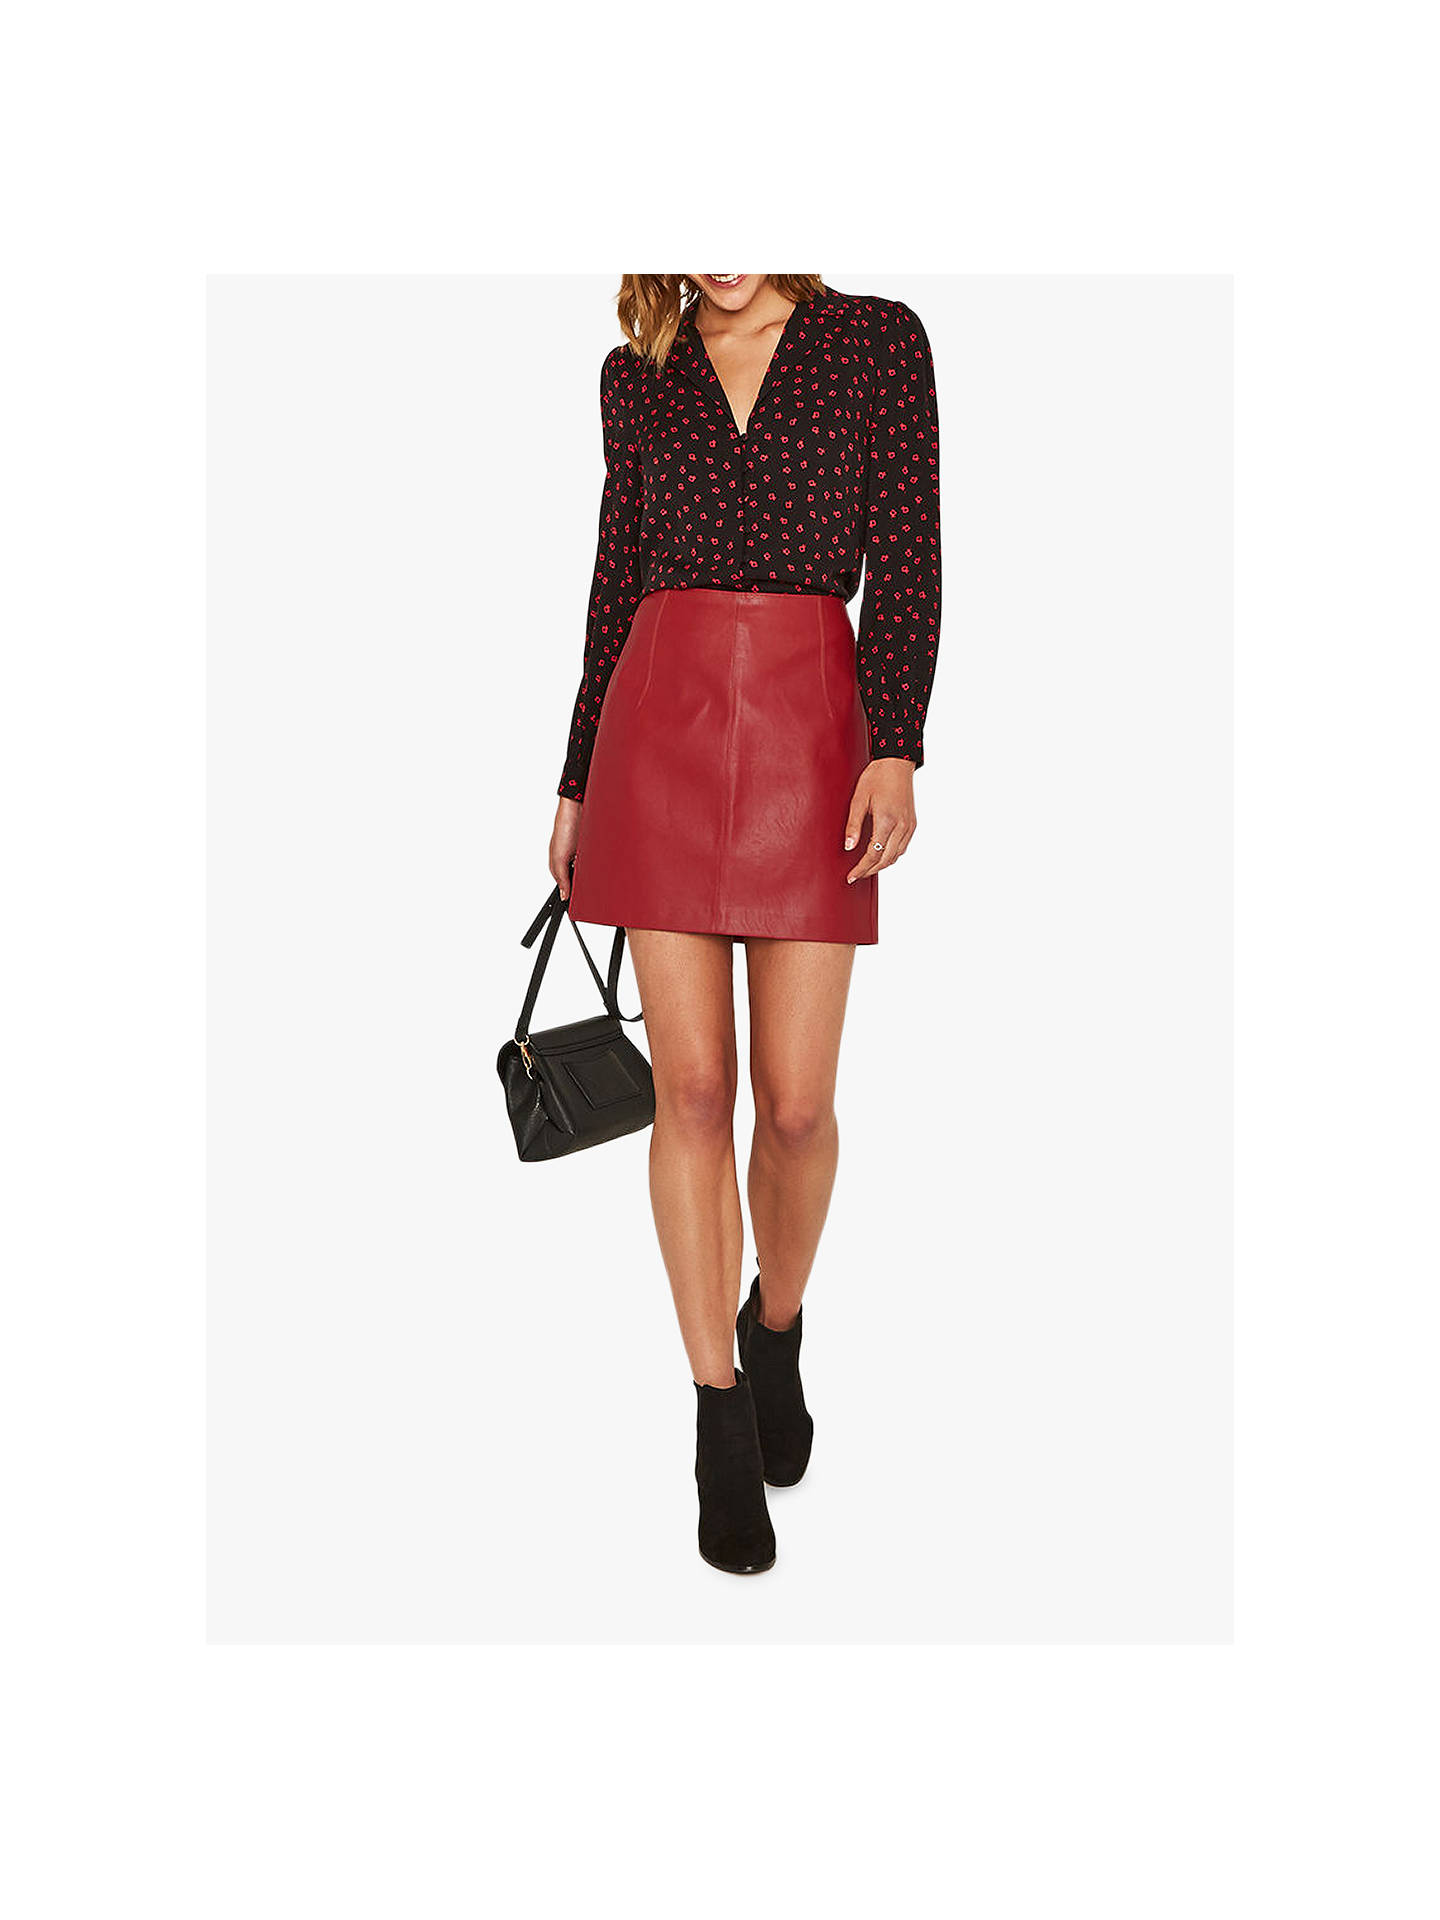 cbdf698c19 Buy Oasis Faux Leather Mini Skirt, Red, 6 Online at johnlewis.com ...